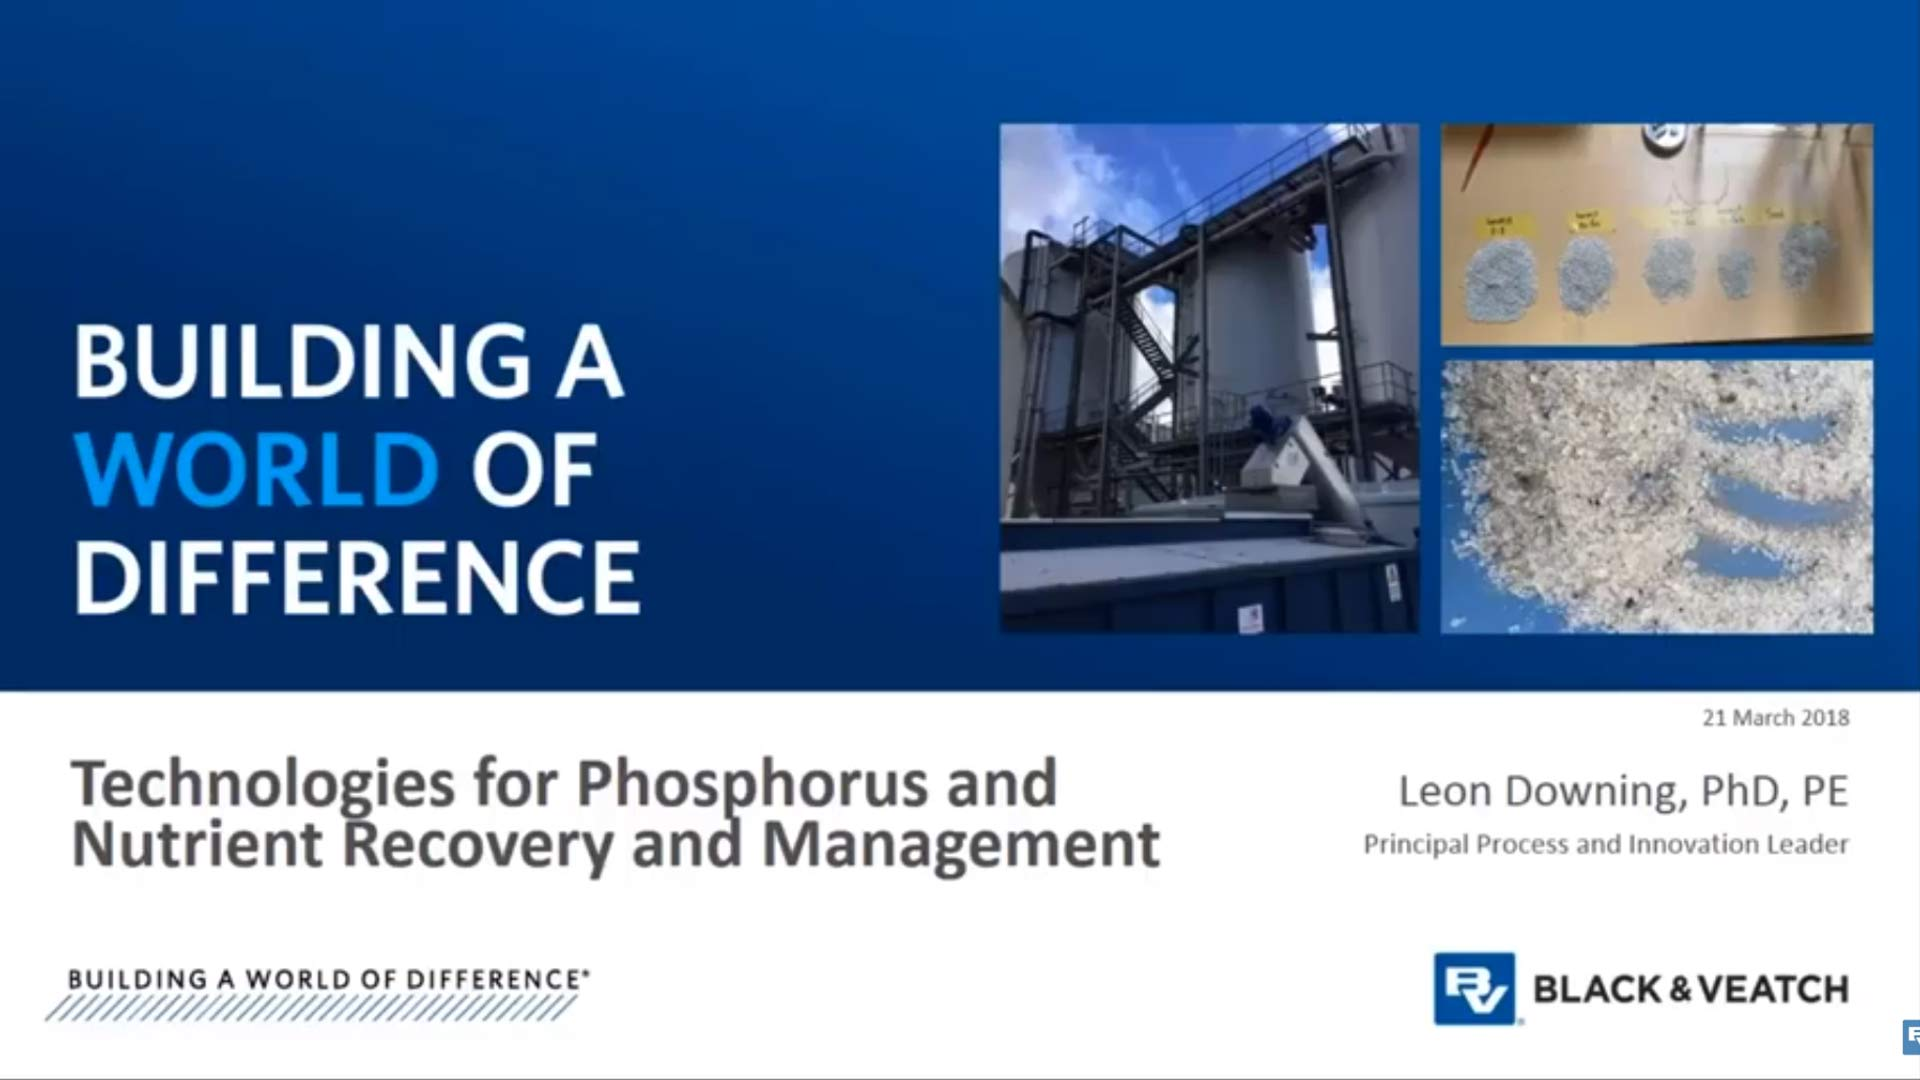 Technologies for Phosphorus and Nutrient Recovery and Management